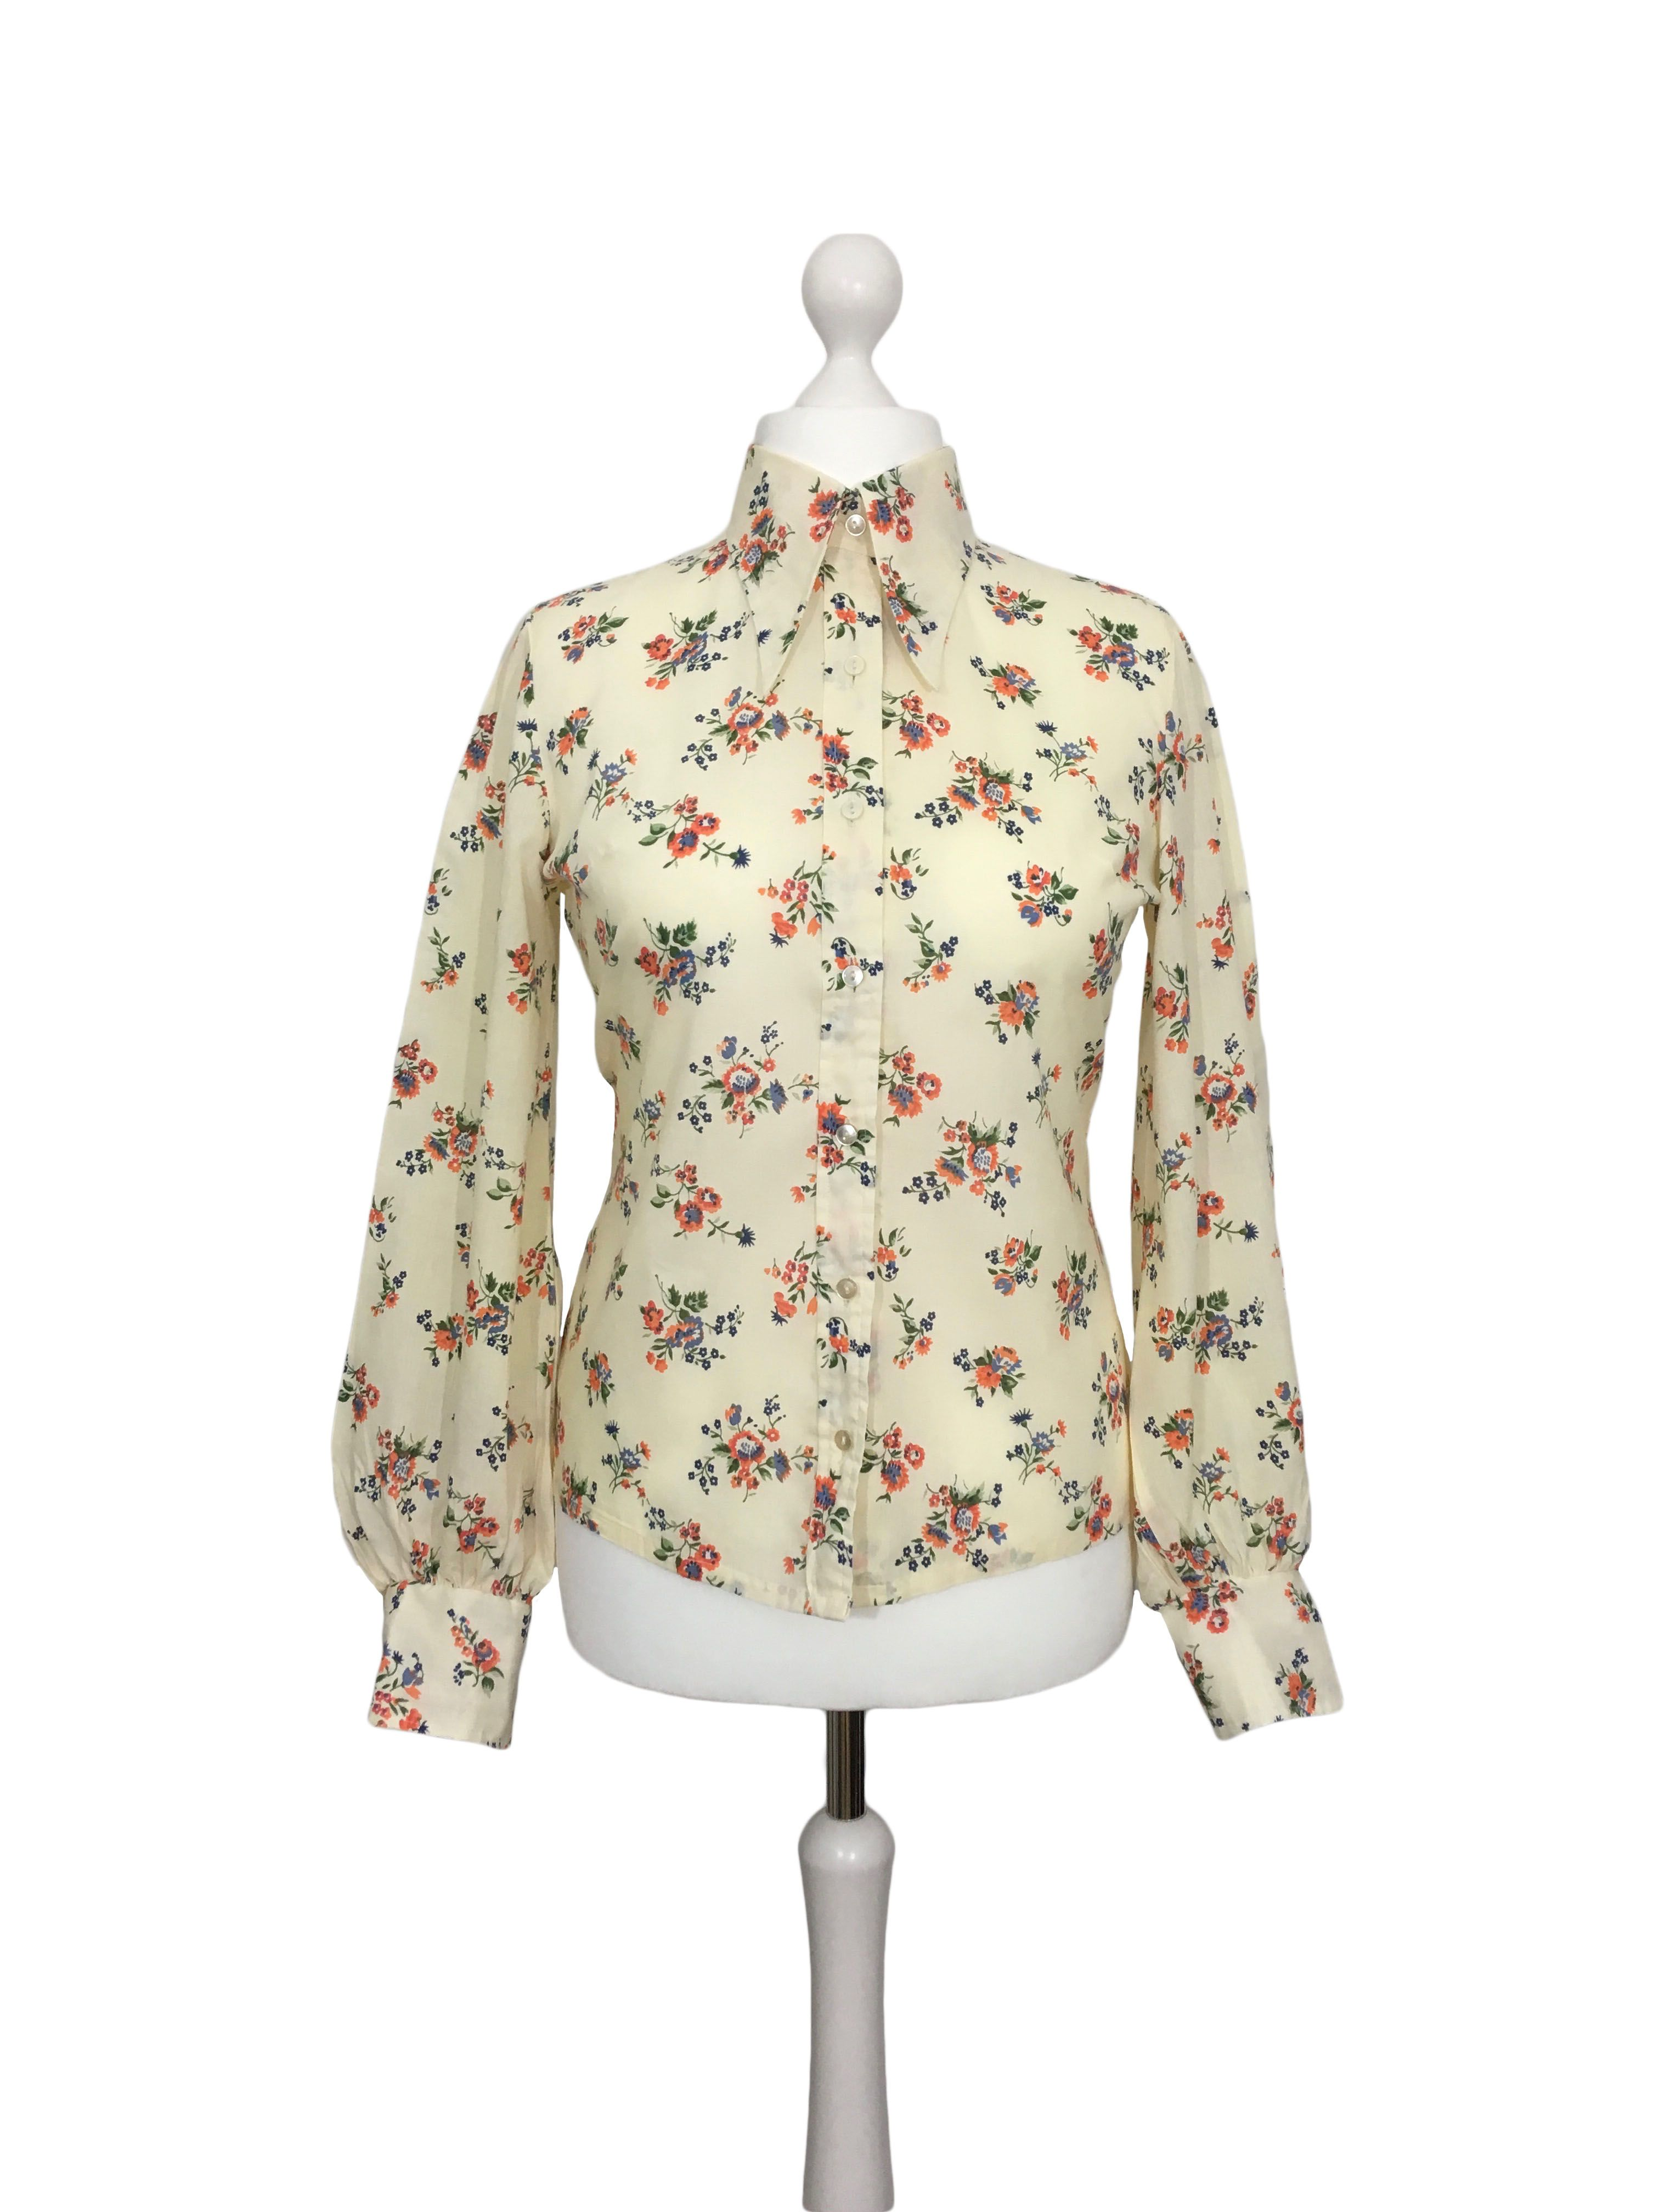 Vintage 1970\u2019s stretch knit squiggle pattern blouse  button front shirt Long sleeves and dagger collar Women\u2019s S Green /& white